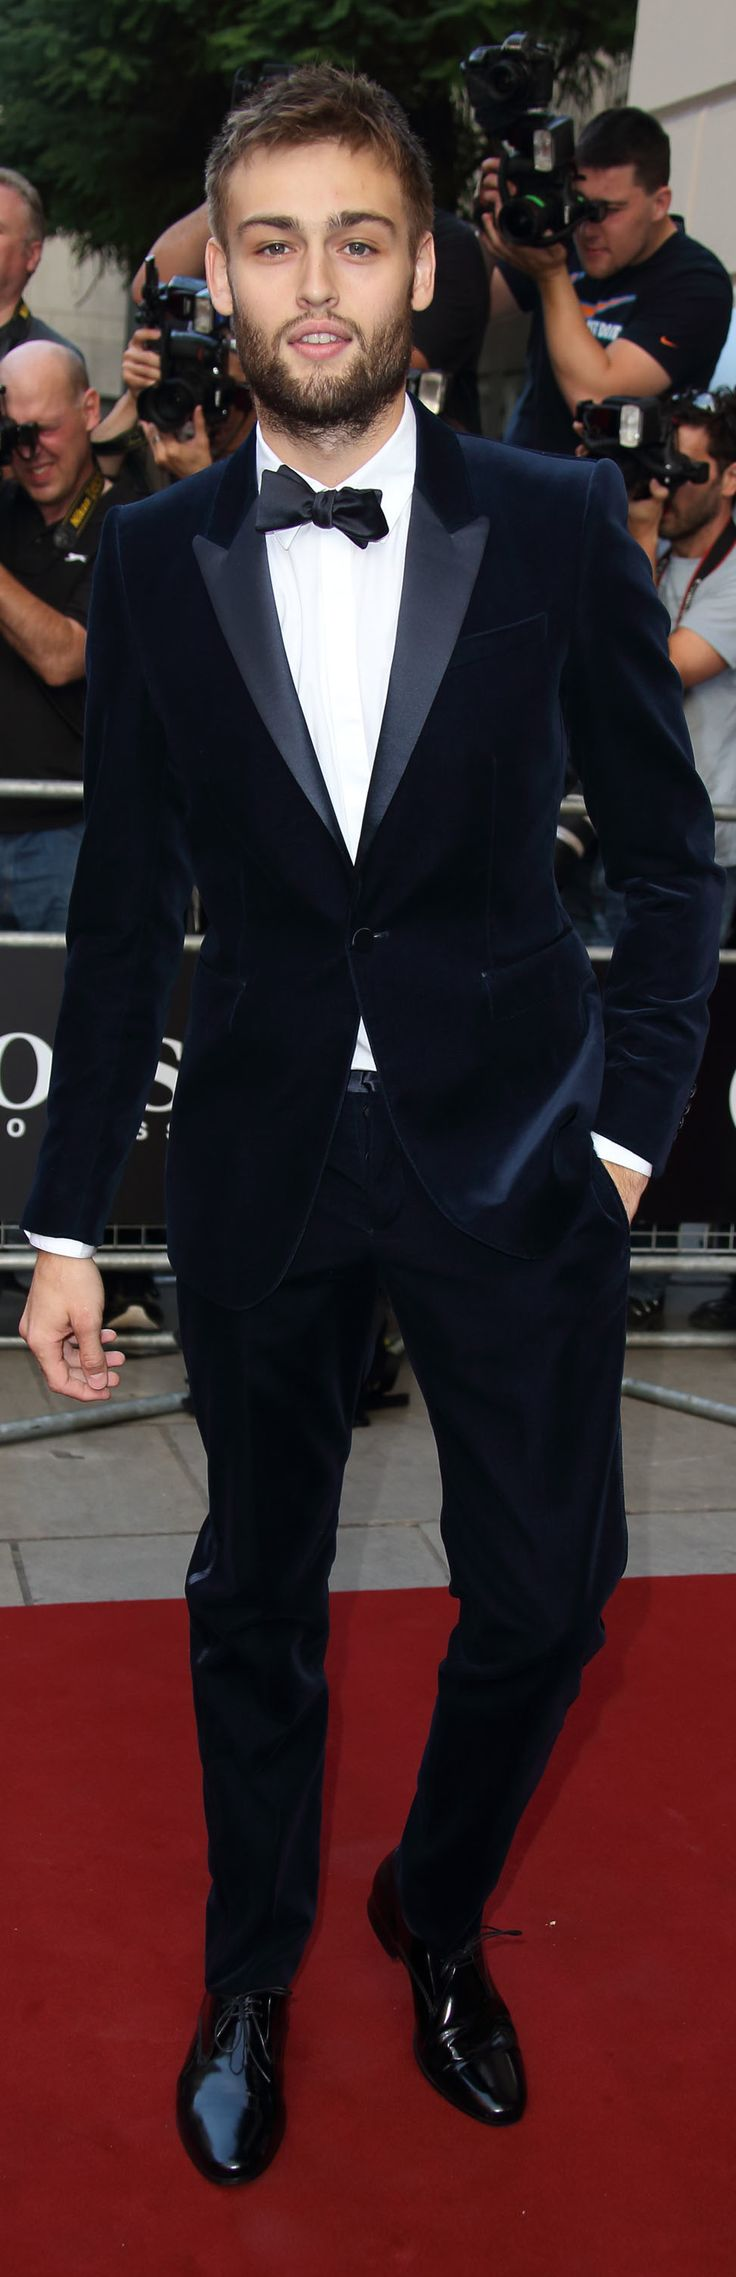 British actor Douglas Booth wearing Burberry tailoring to the GQ Men of the Year Awards in London